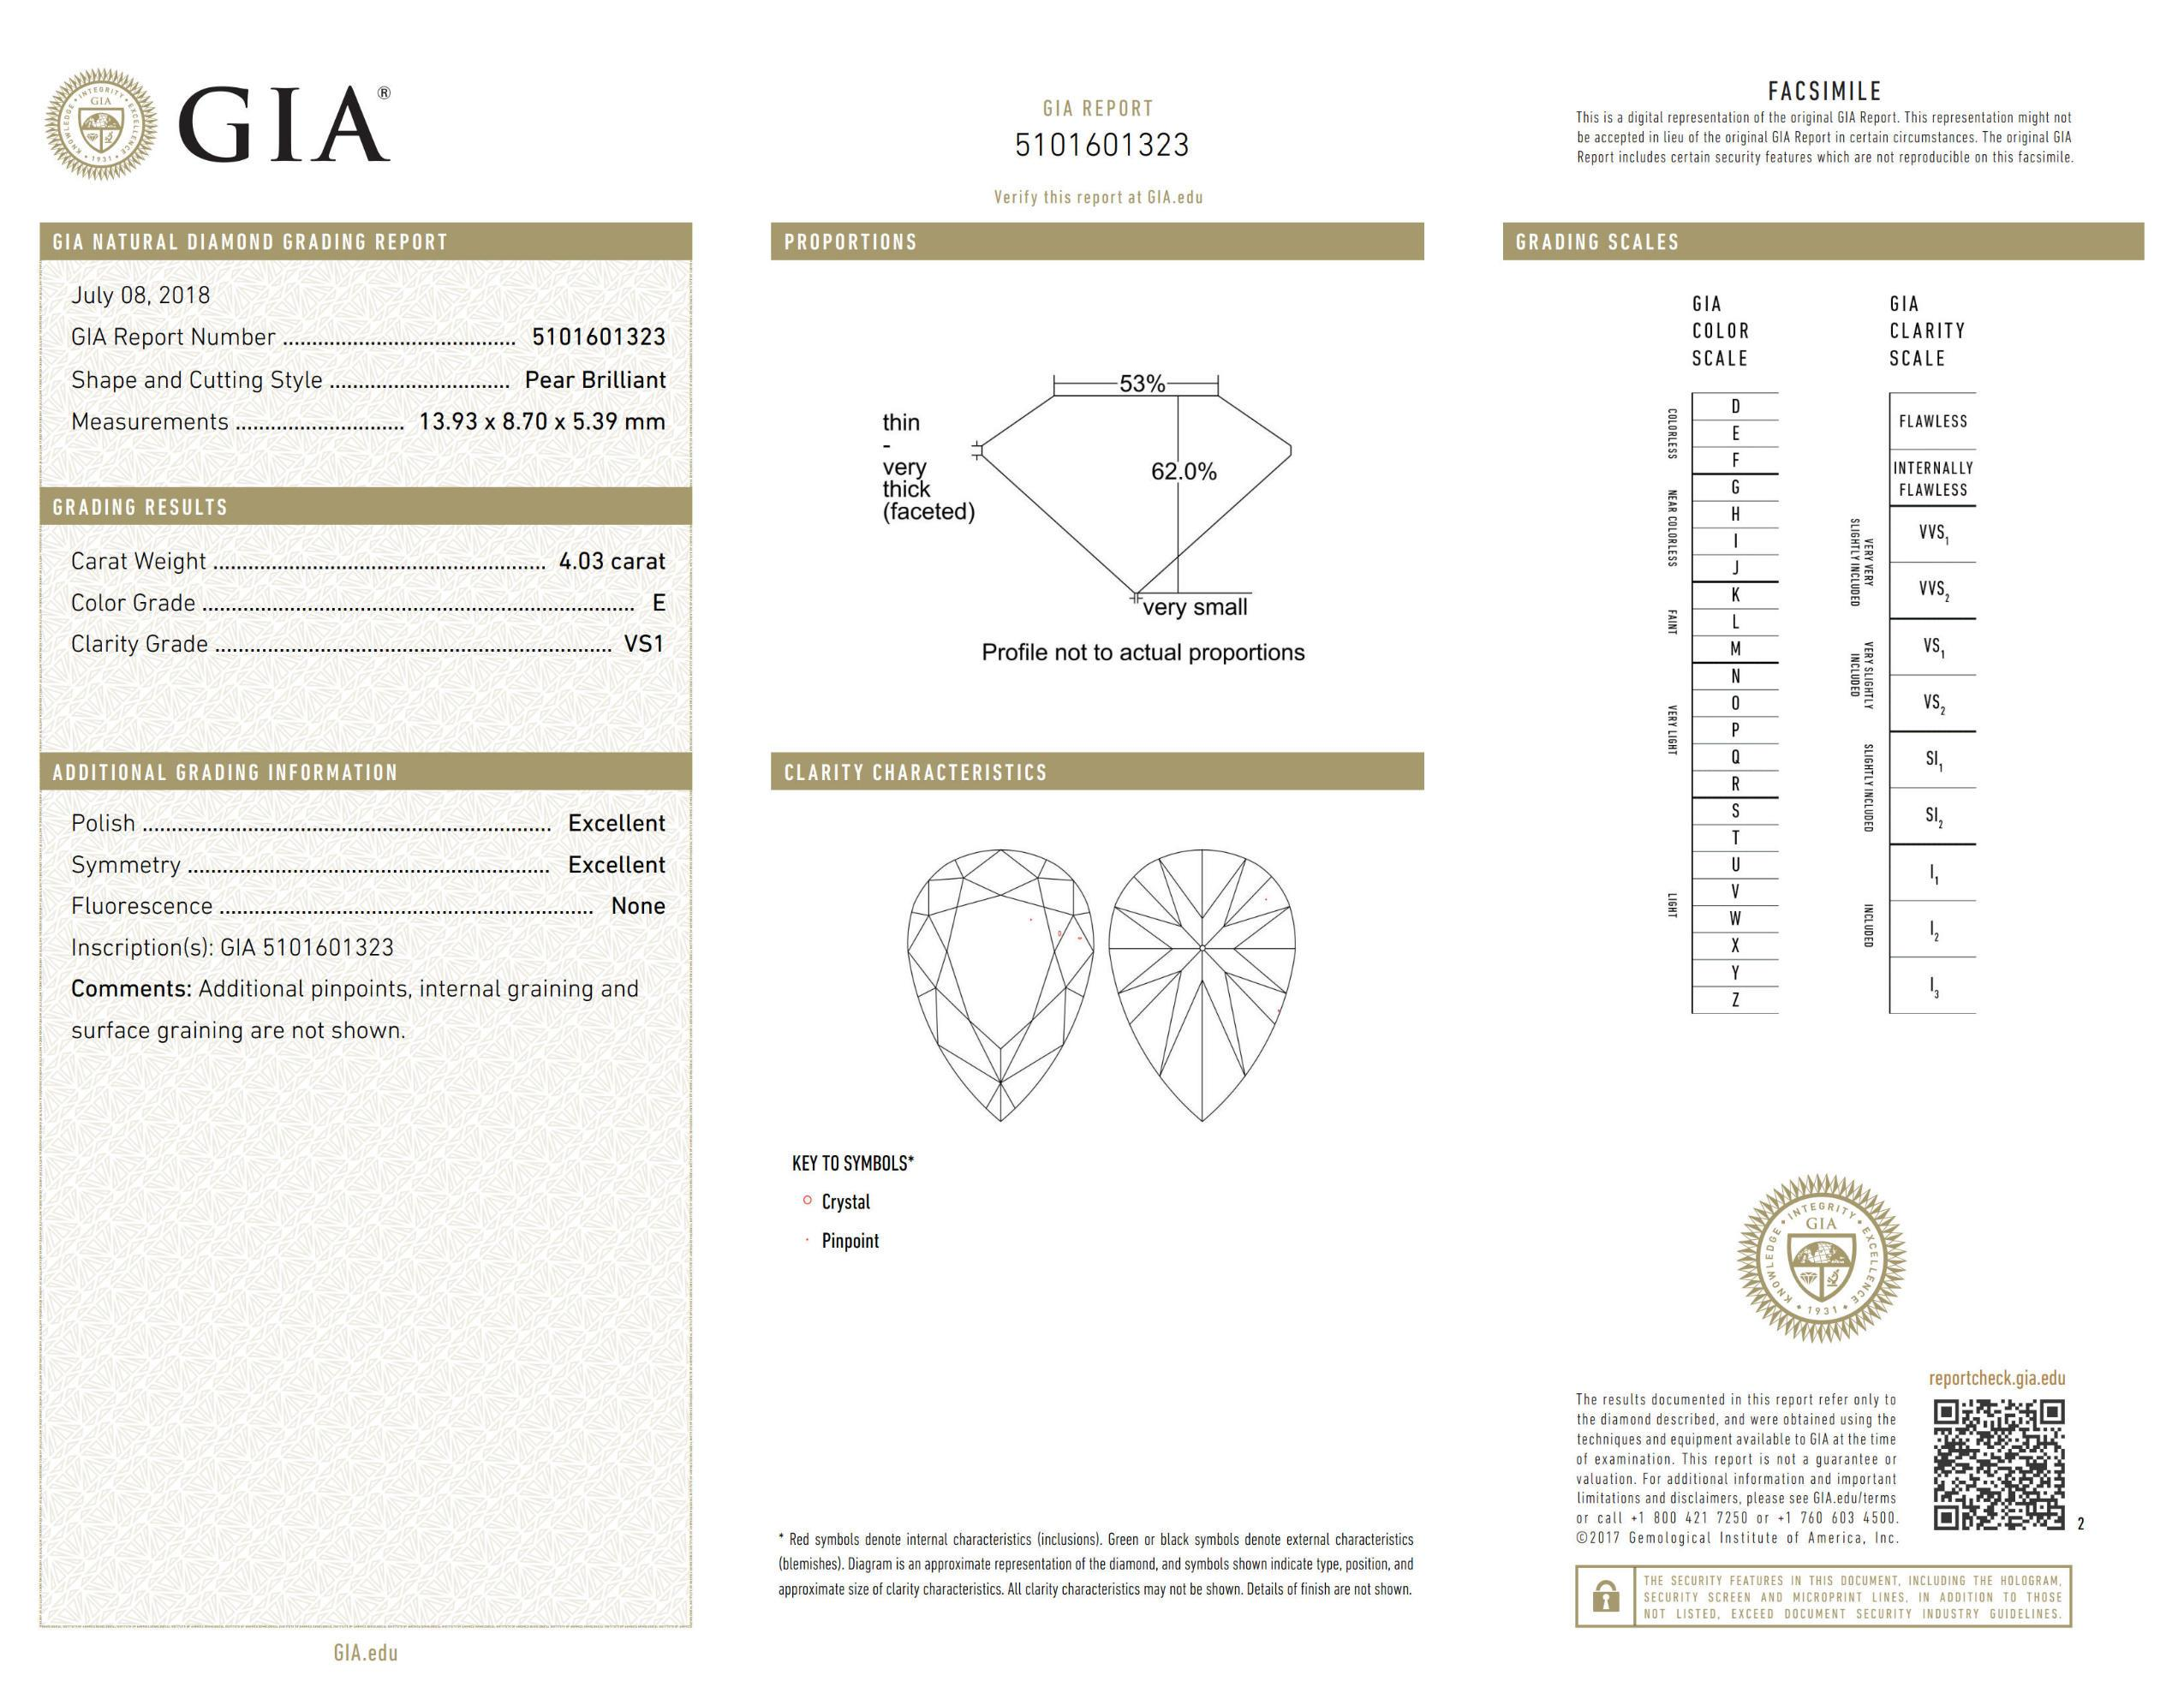 This is a 4.03 carat pear shape, E color, VS1 clarity natural diamond accompanied by a GIA grading report.